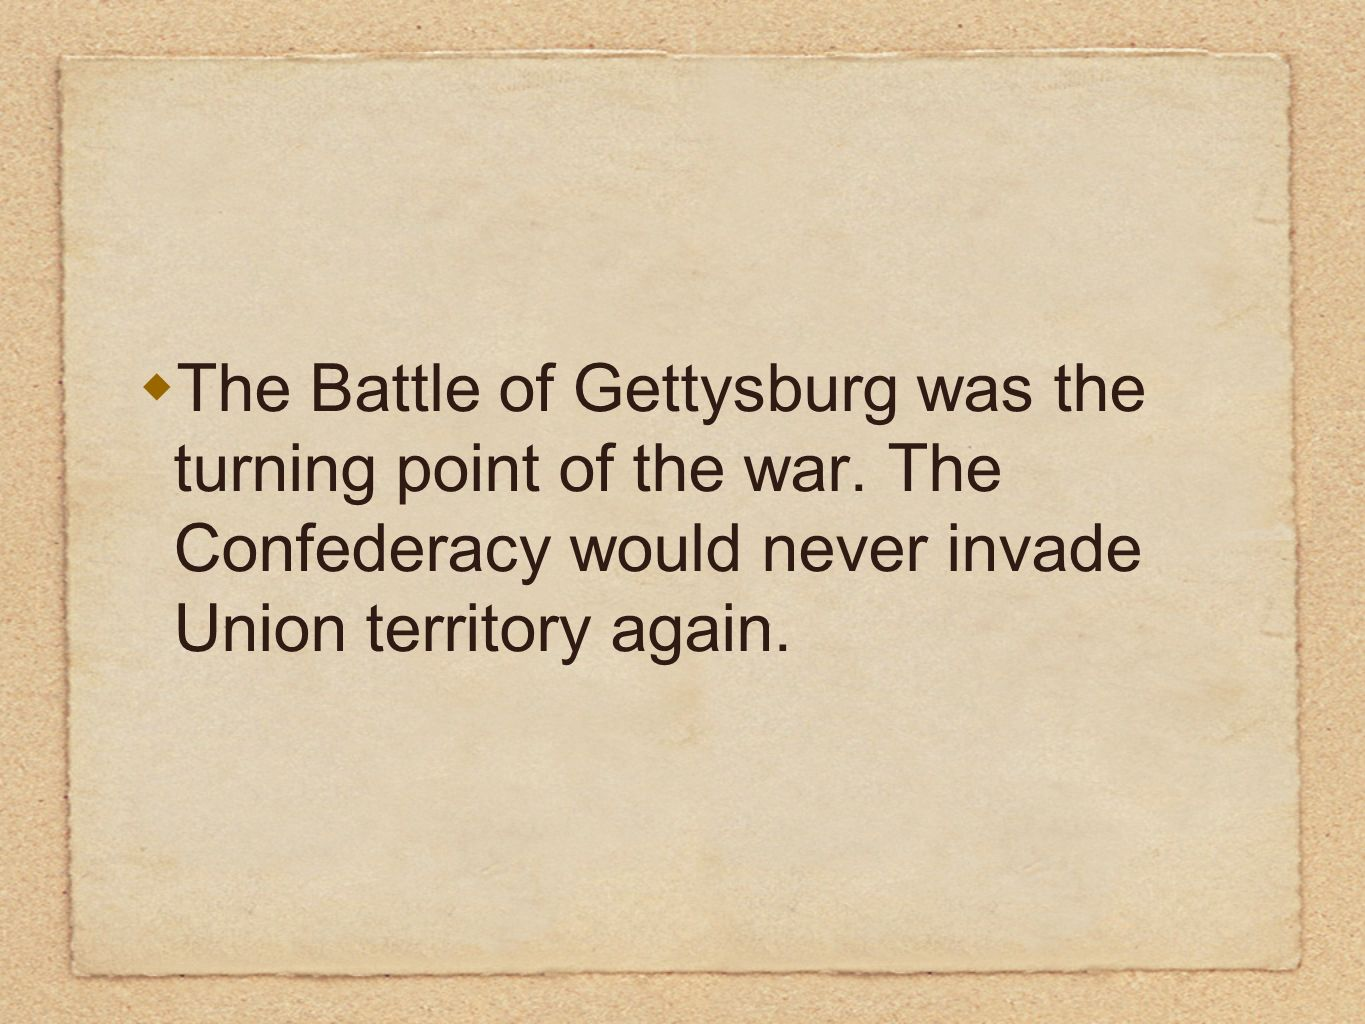 gettysburg was the turning point in the american civil war The battle of gettysburg, fought from july 1 to july 3, 1863, is considered the most important engagement of the american civil war after a great victory.